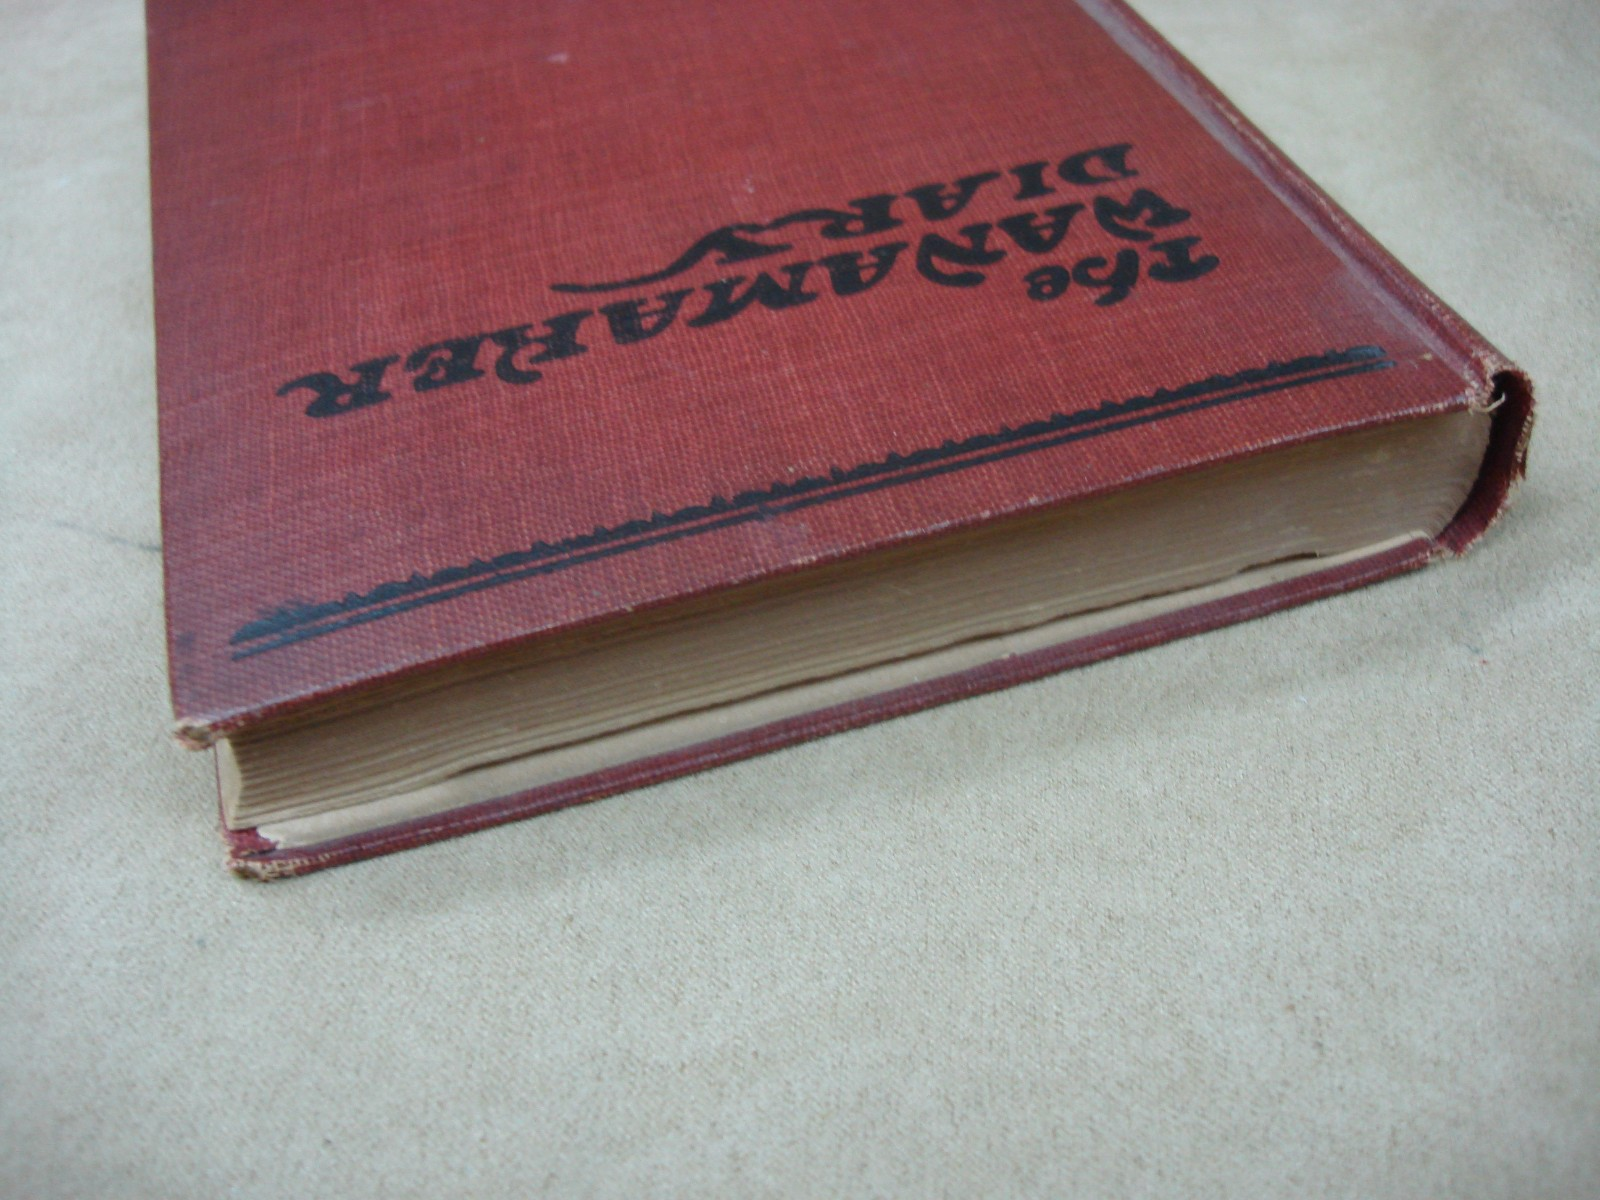 """Vintage Hardcover Book : Antique """"the wanamaker diary hardcover book w"""